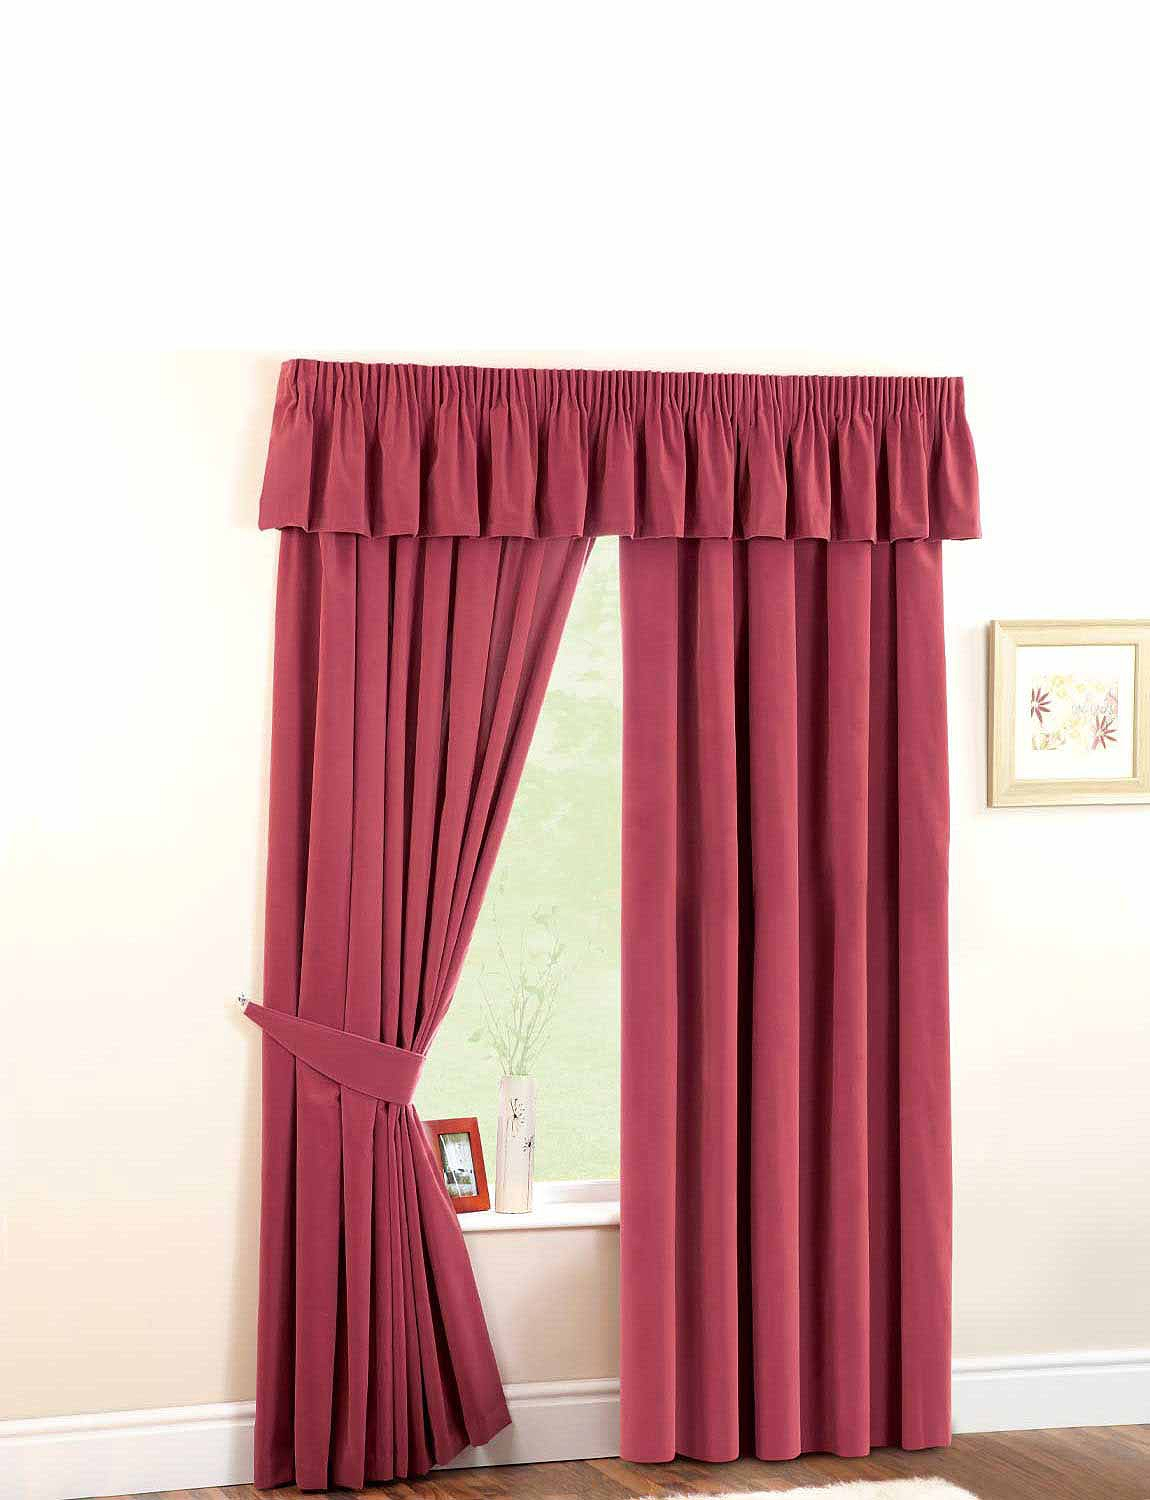 Image Result For Thermal Curtains Sale